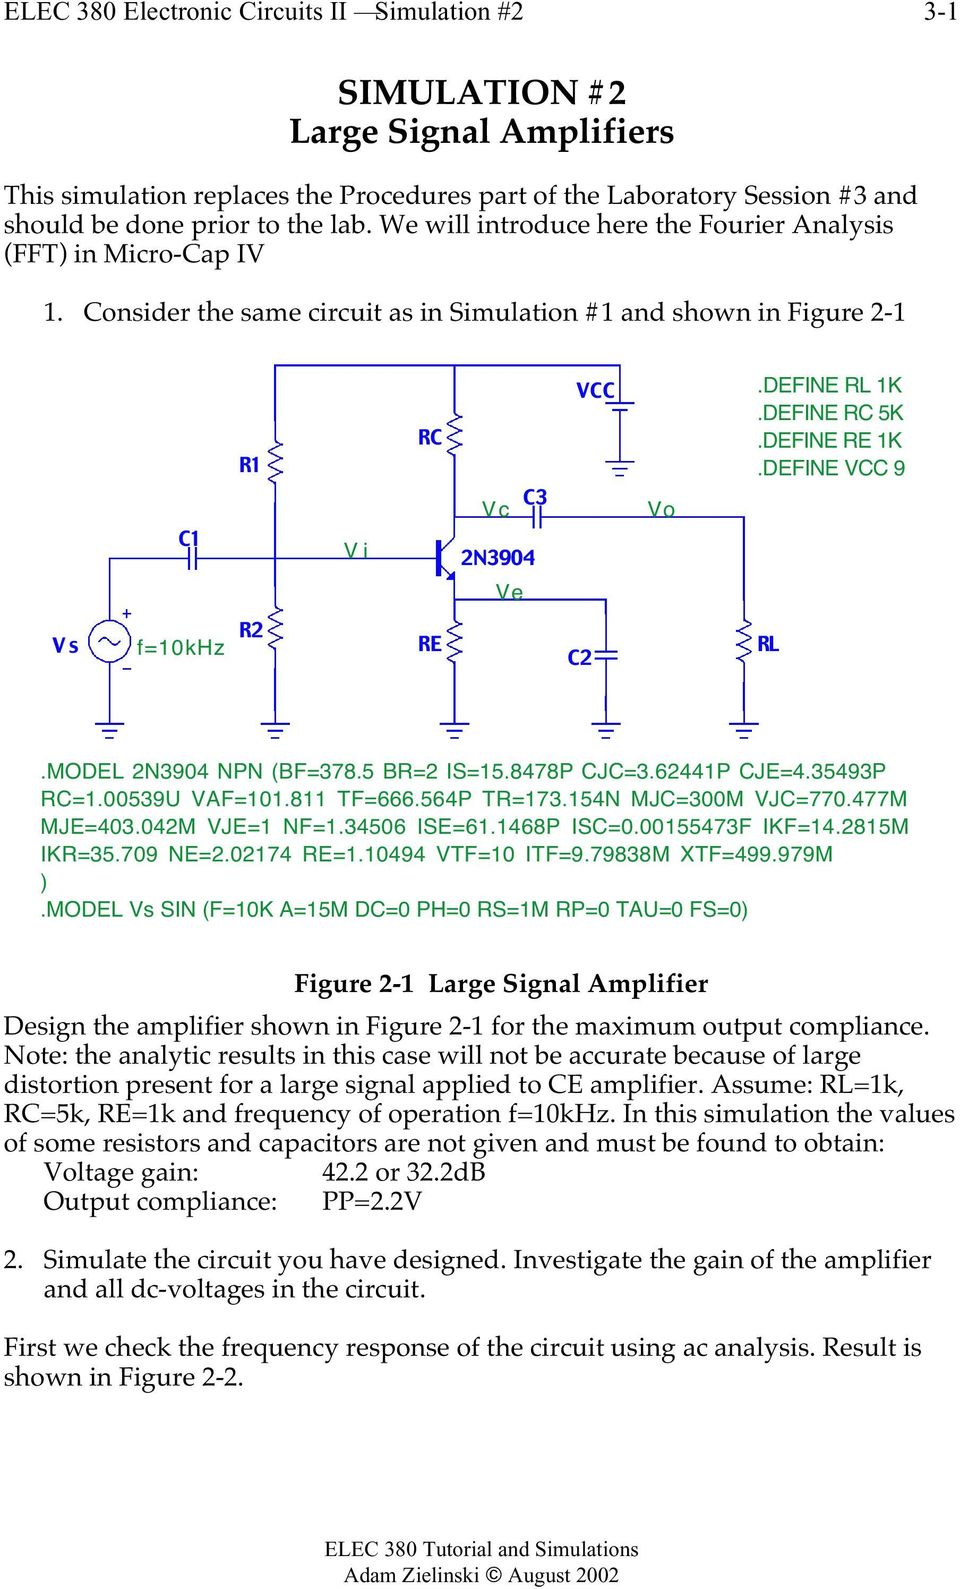 Tutorial And Simulations For Micro Cap Iv Pdf Lm741 Simple Dc Amplifier Can Be Added To Afc Circuit Of Fm Tuner Define Re 1kdefine Vcc 9 Ve Vs F10khz R2 C2 Rl